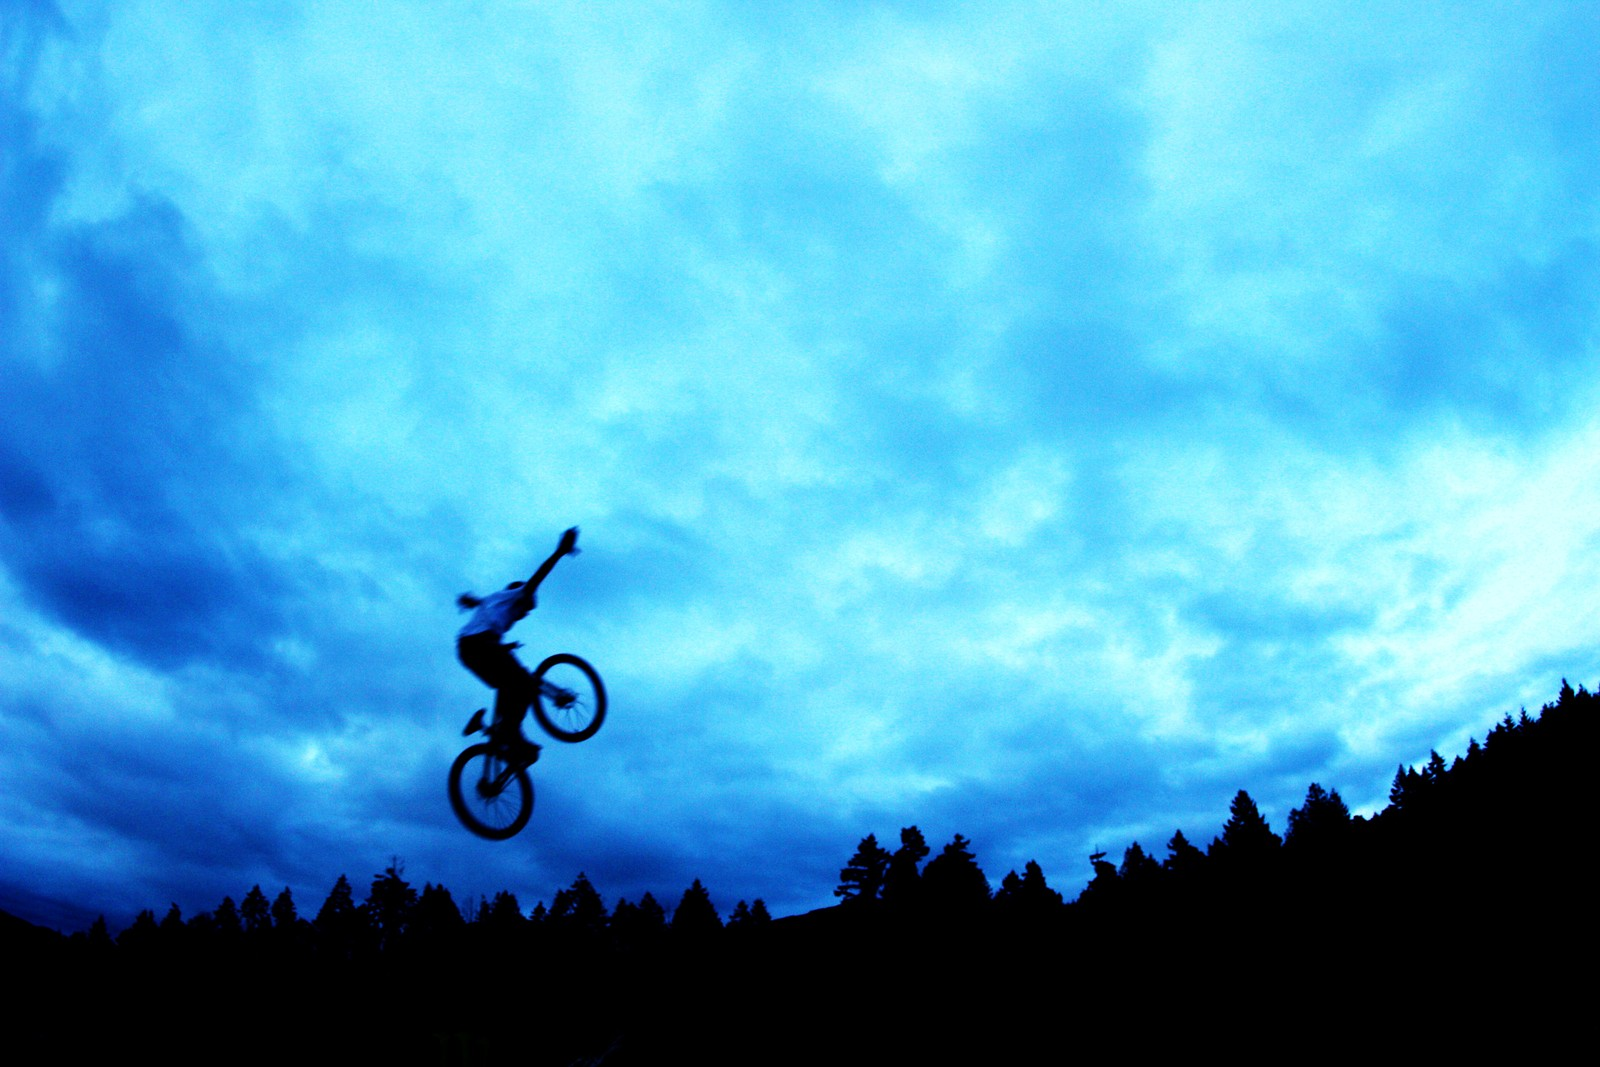 tuck no hander - Super T - Mountain Biking Pictures - Vital MTB